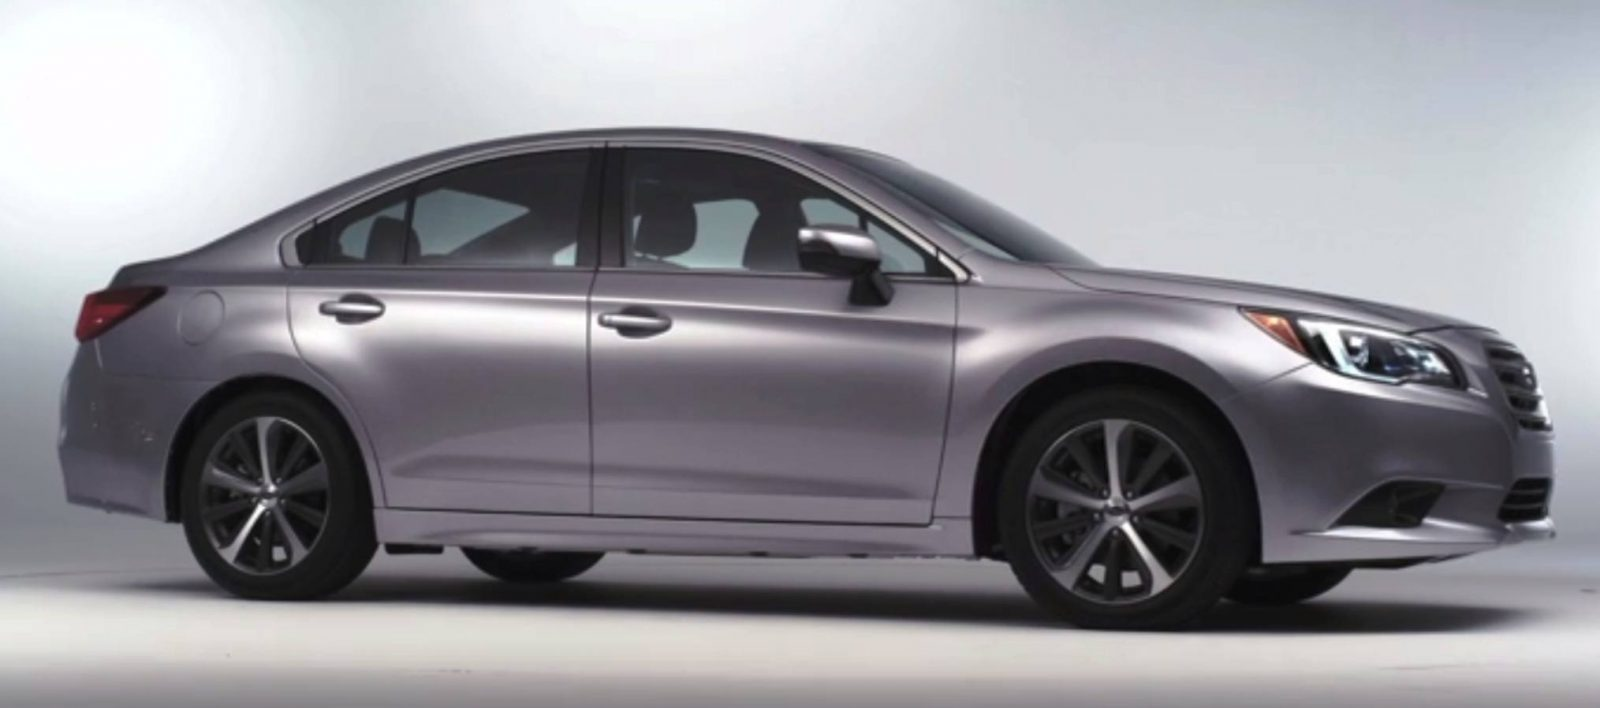 2015 Subaru Legacy Sedan -- More Lux and Tech in Cabin -- Finally Some Exterior Style -- Even 36MPG Highway  24